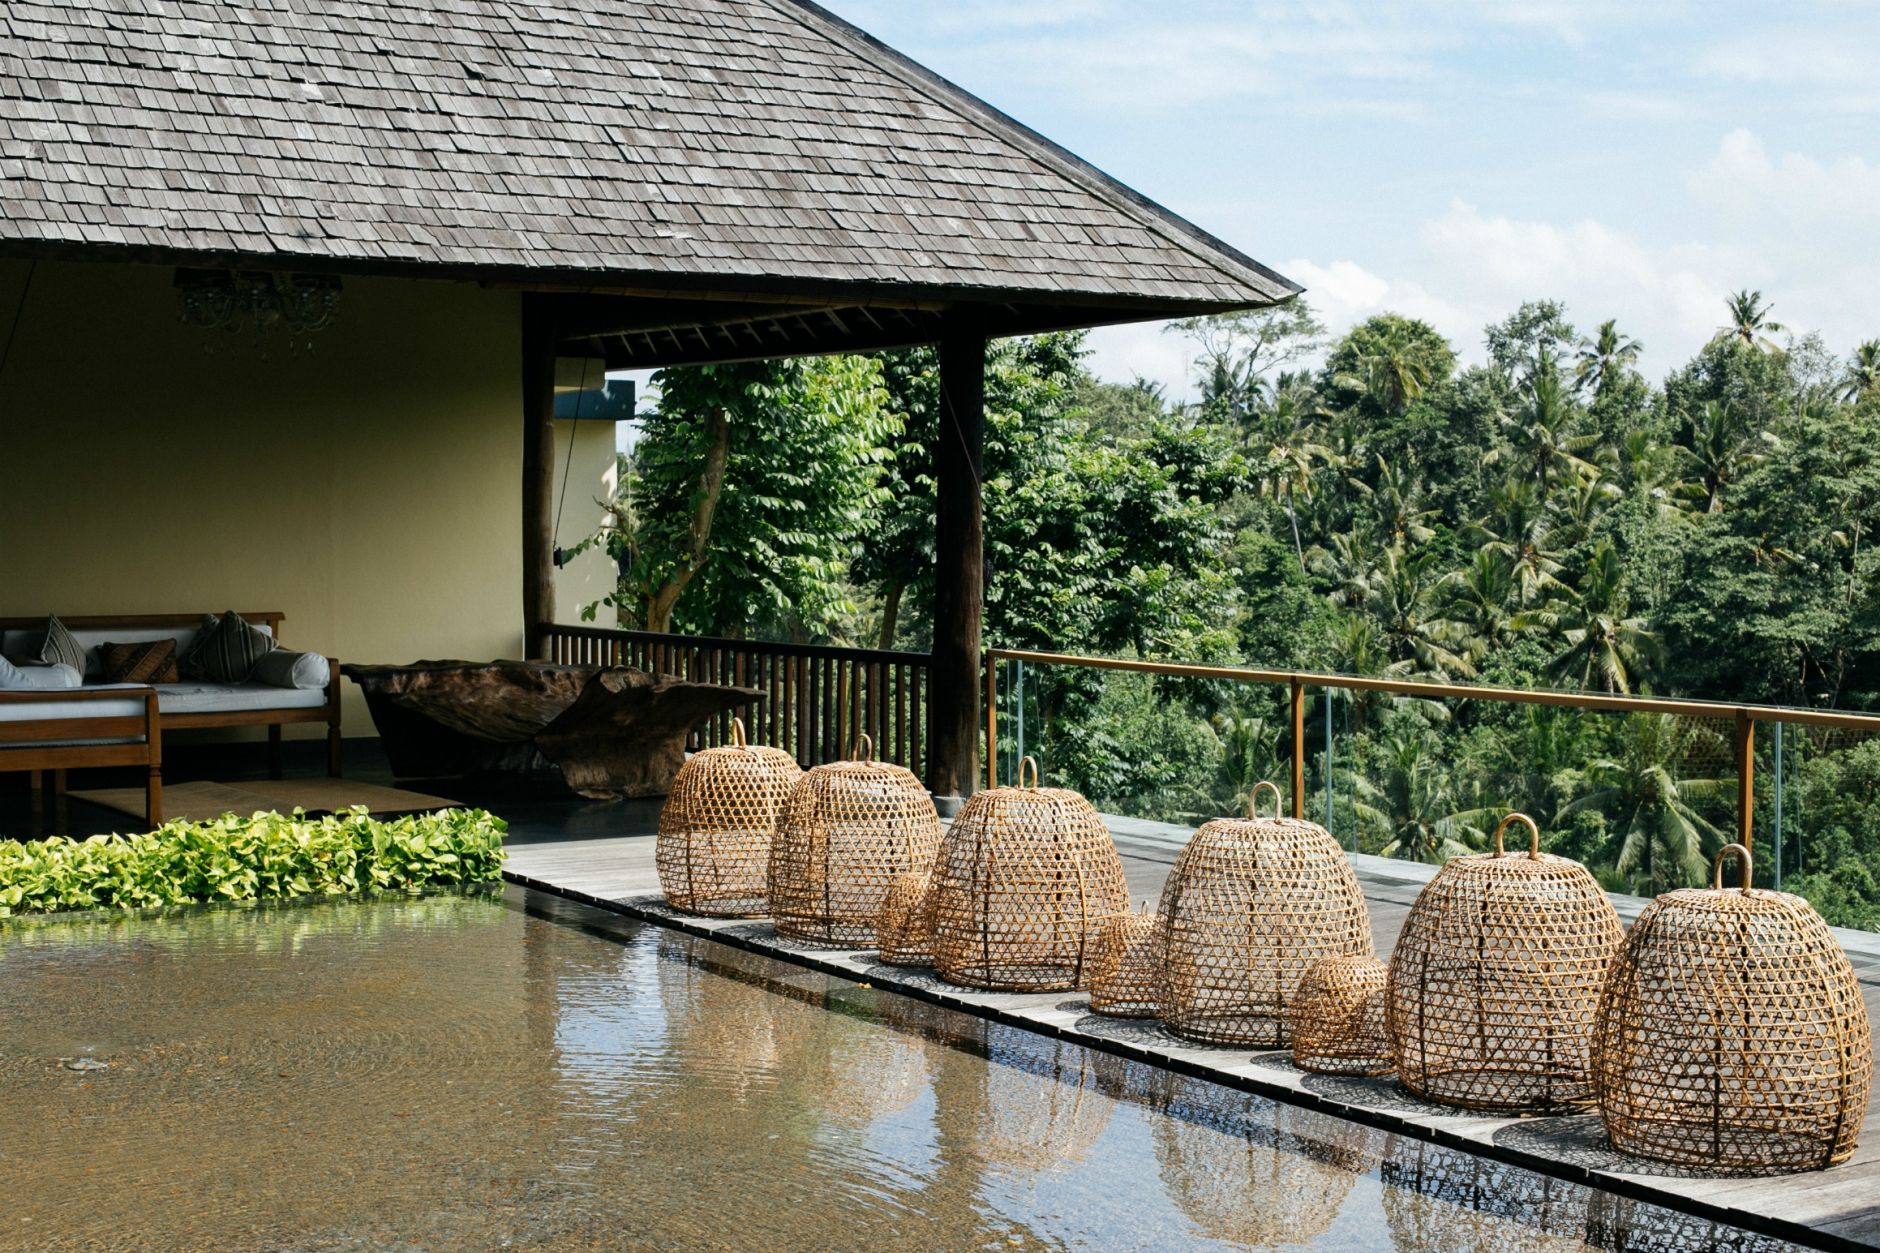 Unforgettable days in the heart of bali disi couturedisi for Design boutique hotel ubud